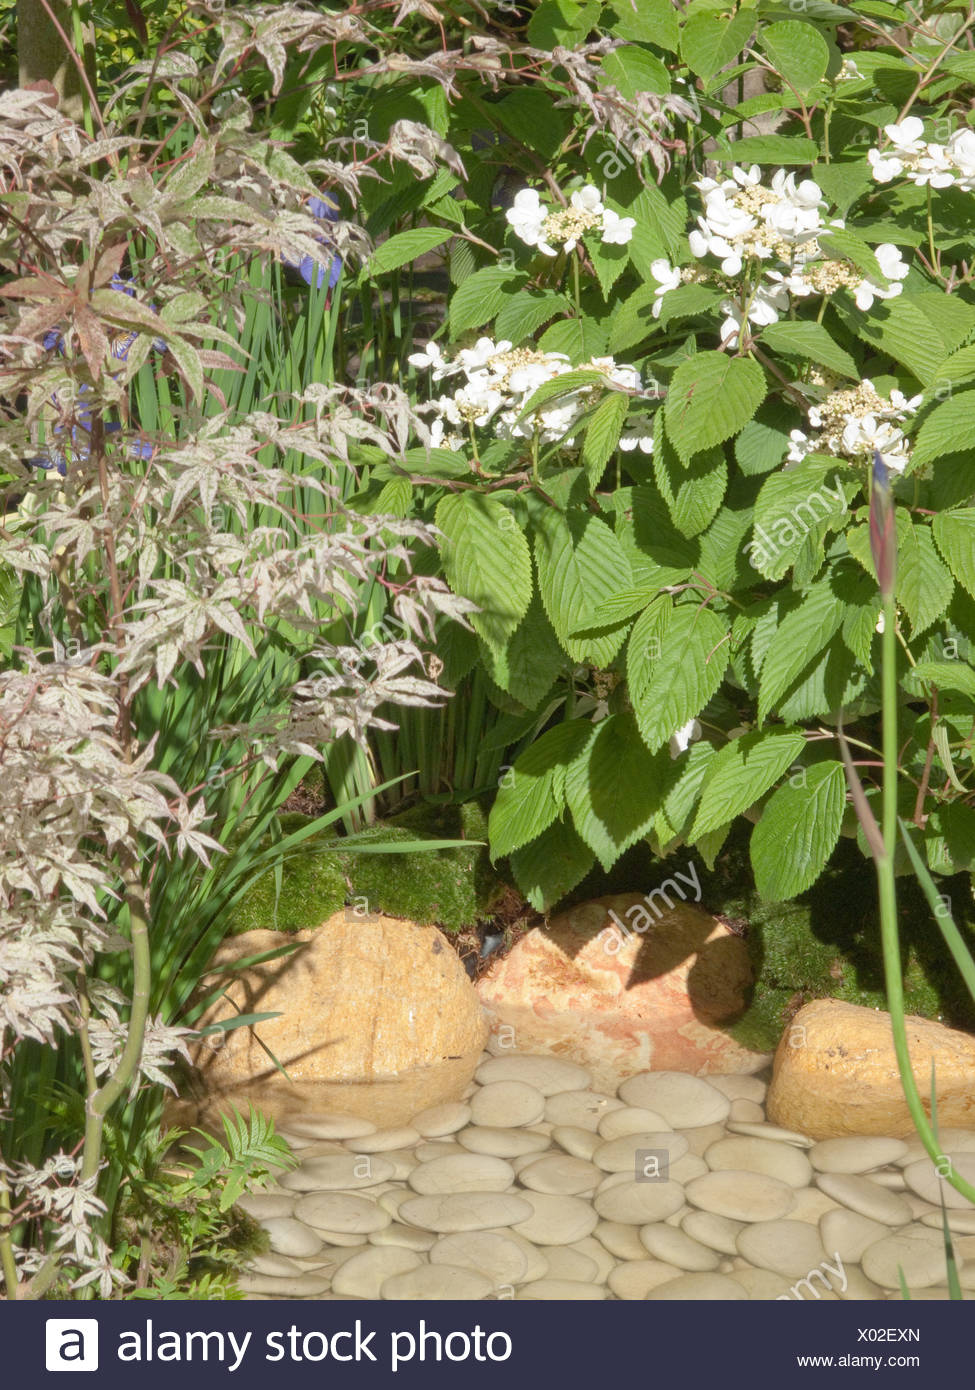 oyal Horticultural Society Chelsea Flower Show in London Lacecap hydrangeas set beside small, shallow pool decorated pebbles - Stock Image